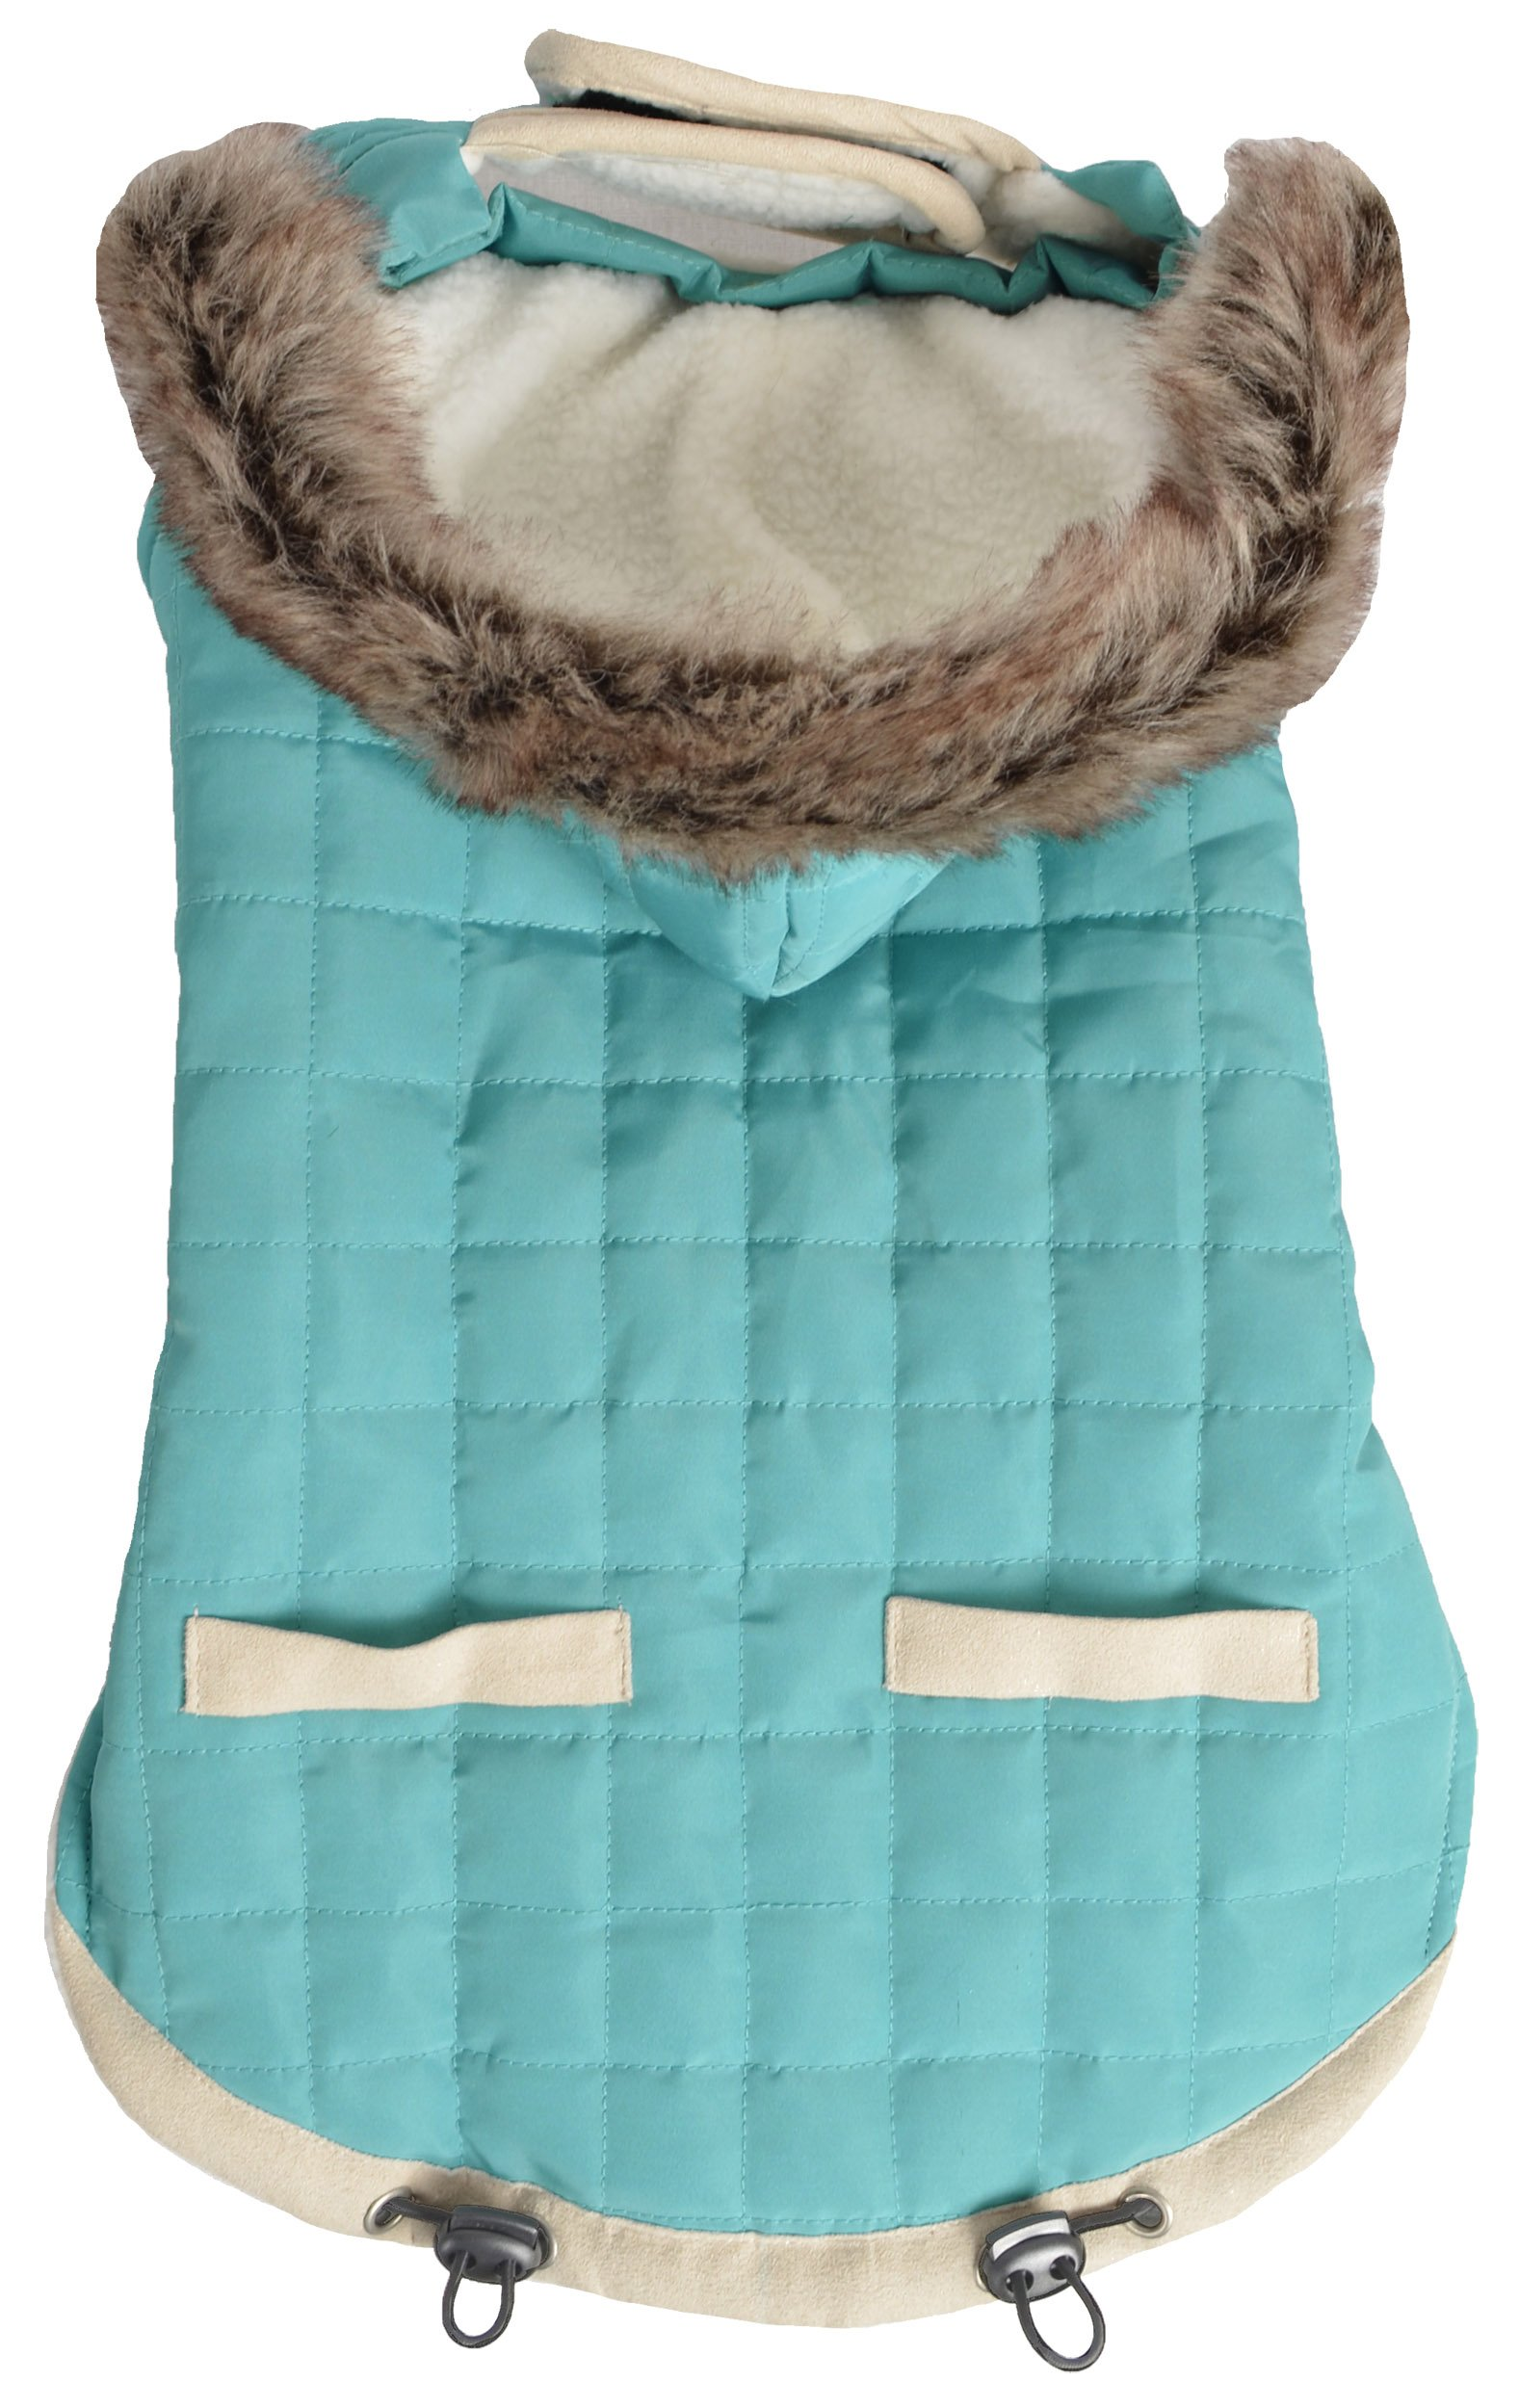 Animal Planet Puffy Jacket, Teal, small